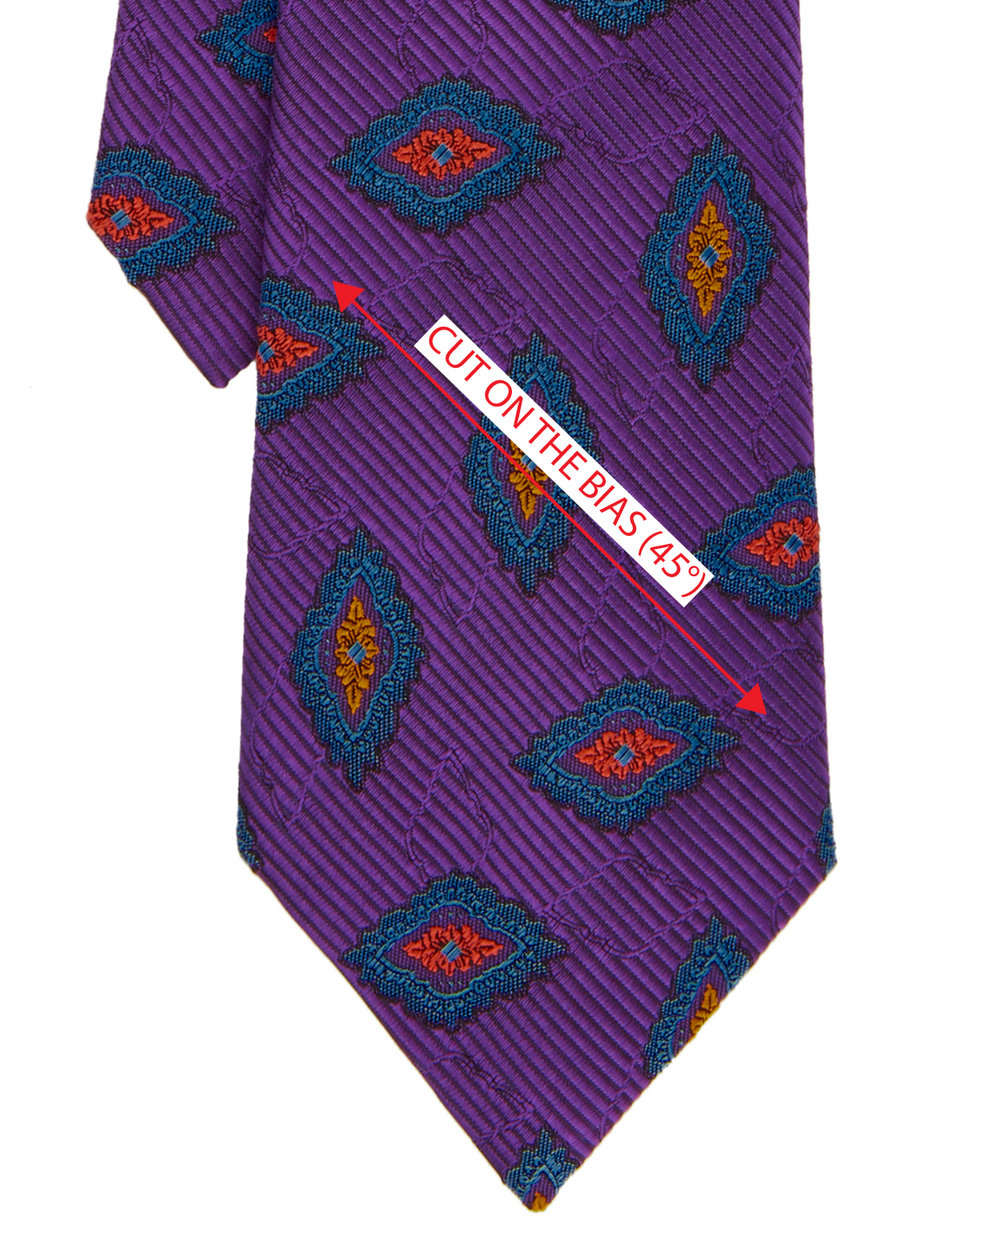 Generally ties are made from silk material, however in the recent years, we have seen ties made from Wool and Cotton. The fabric is cut on a bias, which means the pattern is cut on 45° angle because the natural stretch or 'give' in the material helps the knot to form without too much tension on the fabric.  Cutting the tie on the bias will allow the tie to drape well and recover quickly when the wearer has finished for the day. Another key point to note is that when it comes to folding the tie in the final stages, it creates a much more softer roll edge than if you were to cut it on the grain for an example.